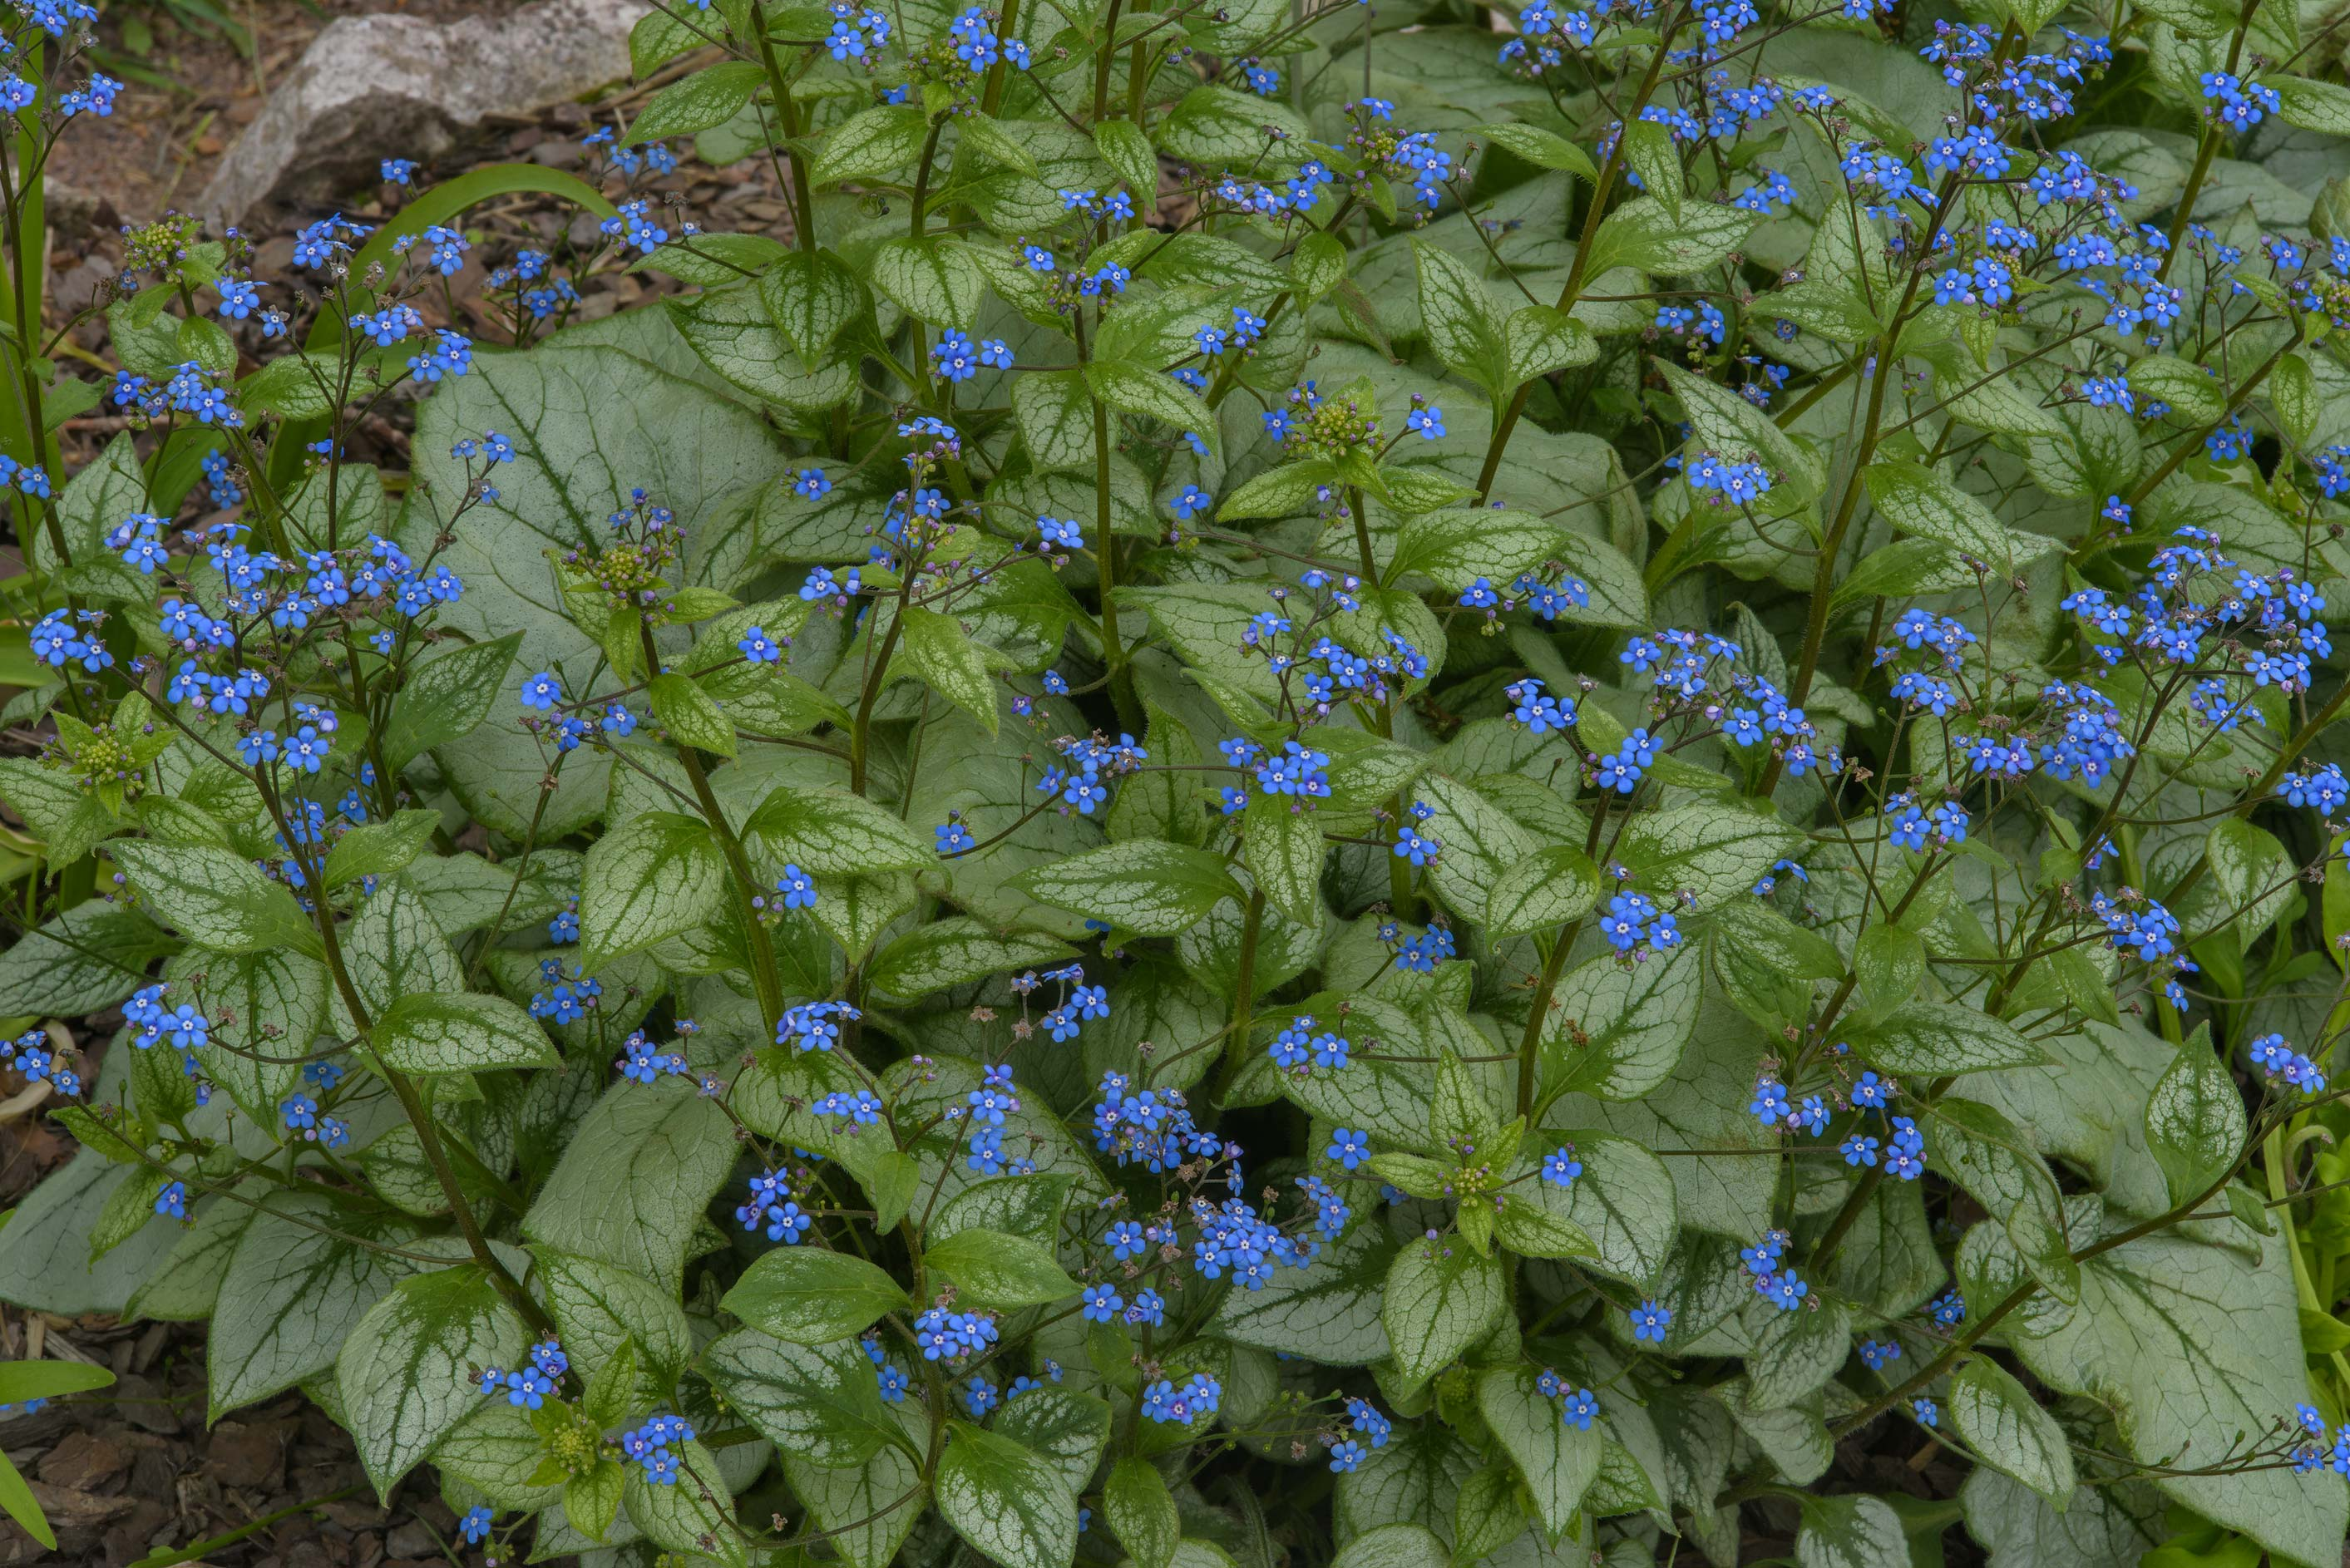 Siberian bugloss (great forget-me-not, Brunnera...Institute. St.Petersburg, Russia